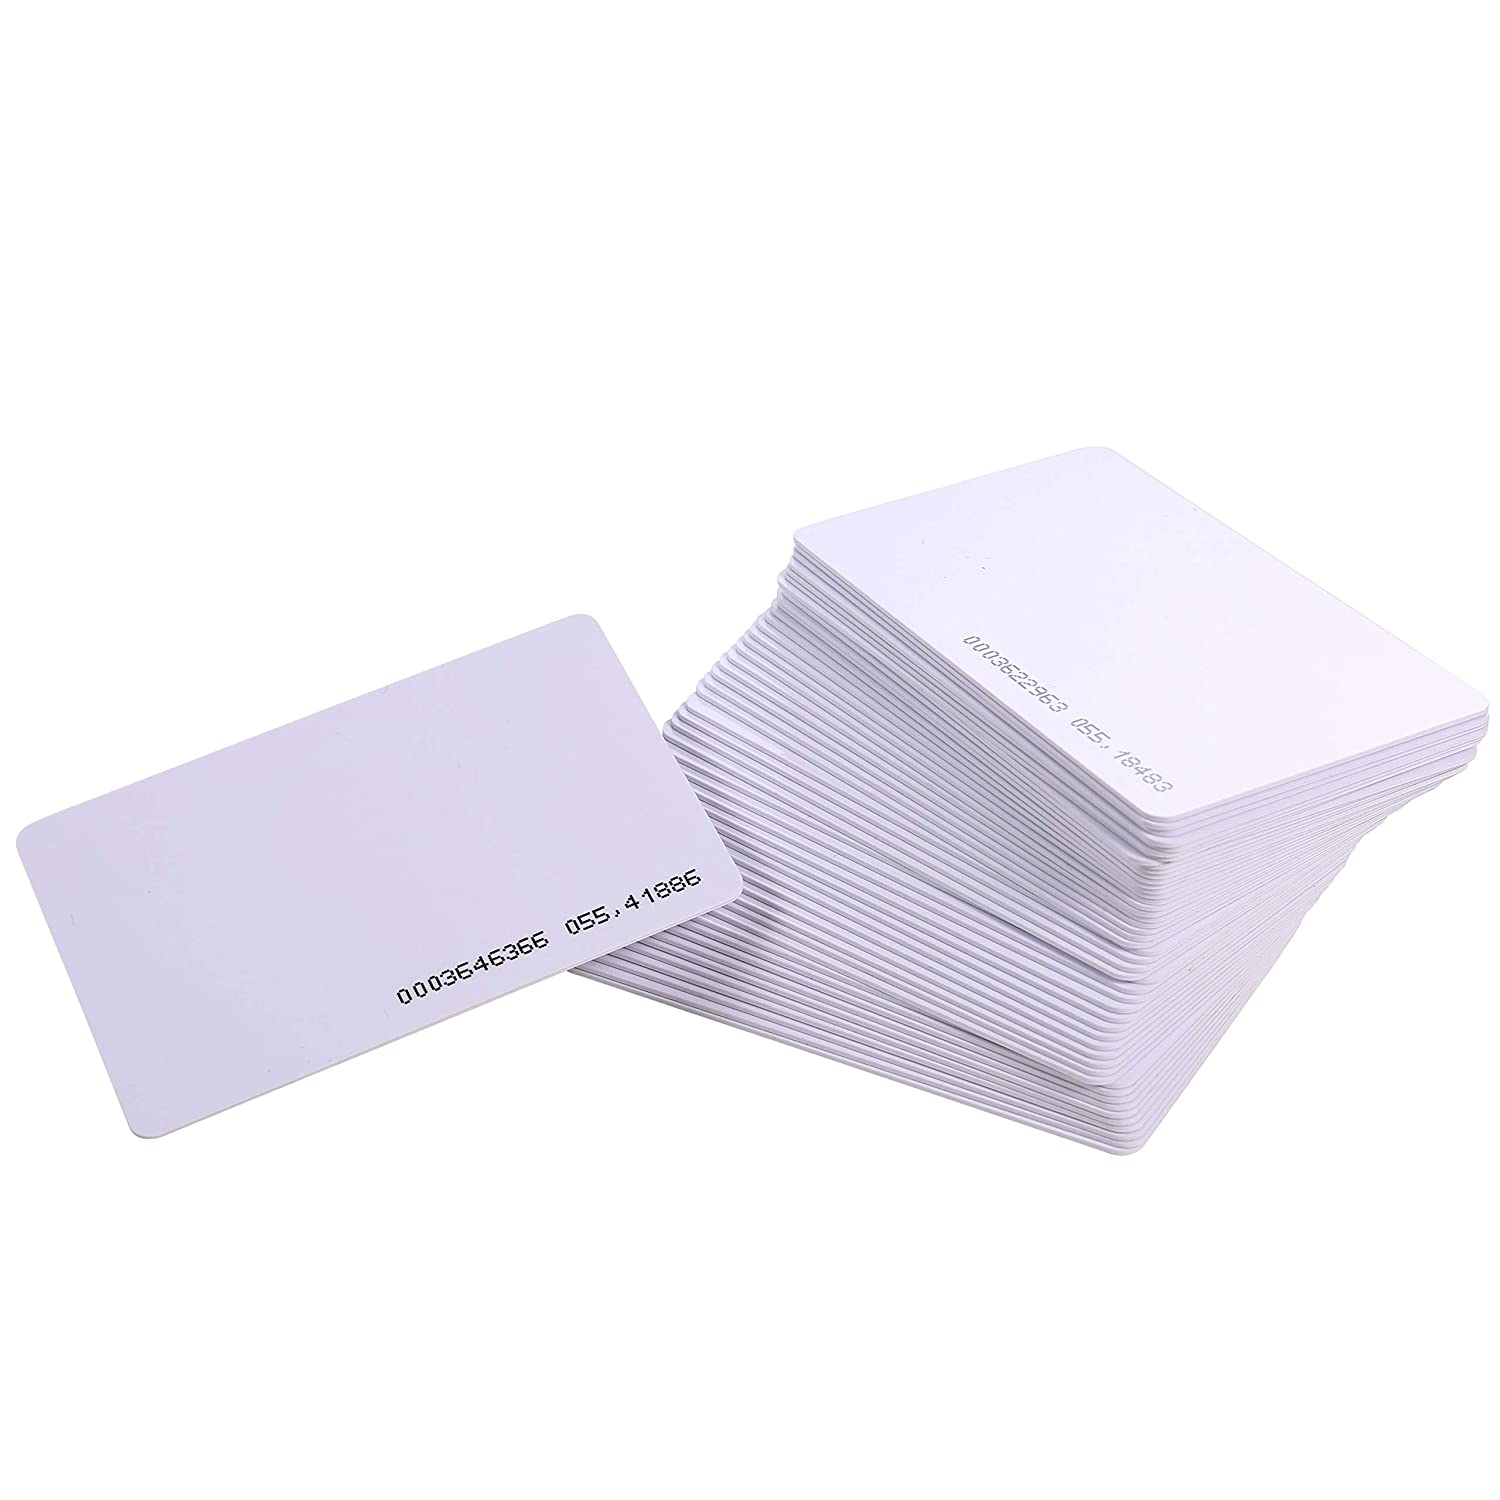 HWMATE Contactless 125Khz EM RFID Proximity ID Smart Entry Access Card for Access Control Time Attandance 100 Pack